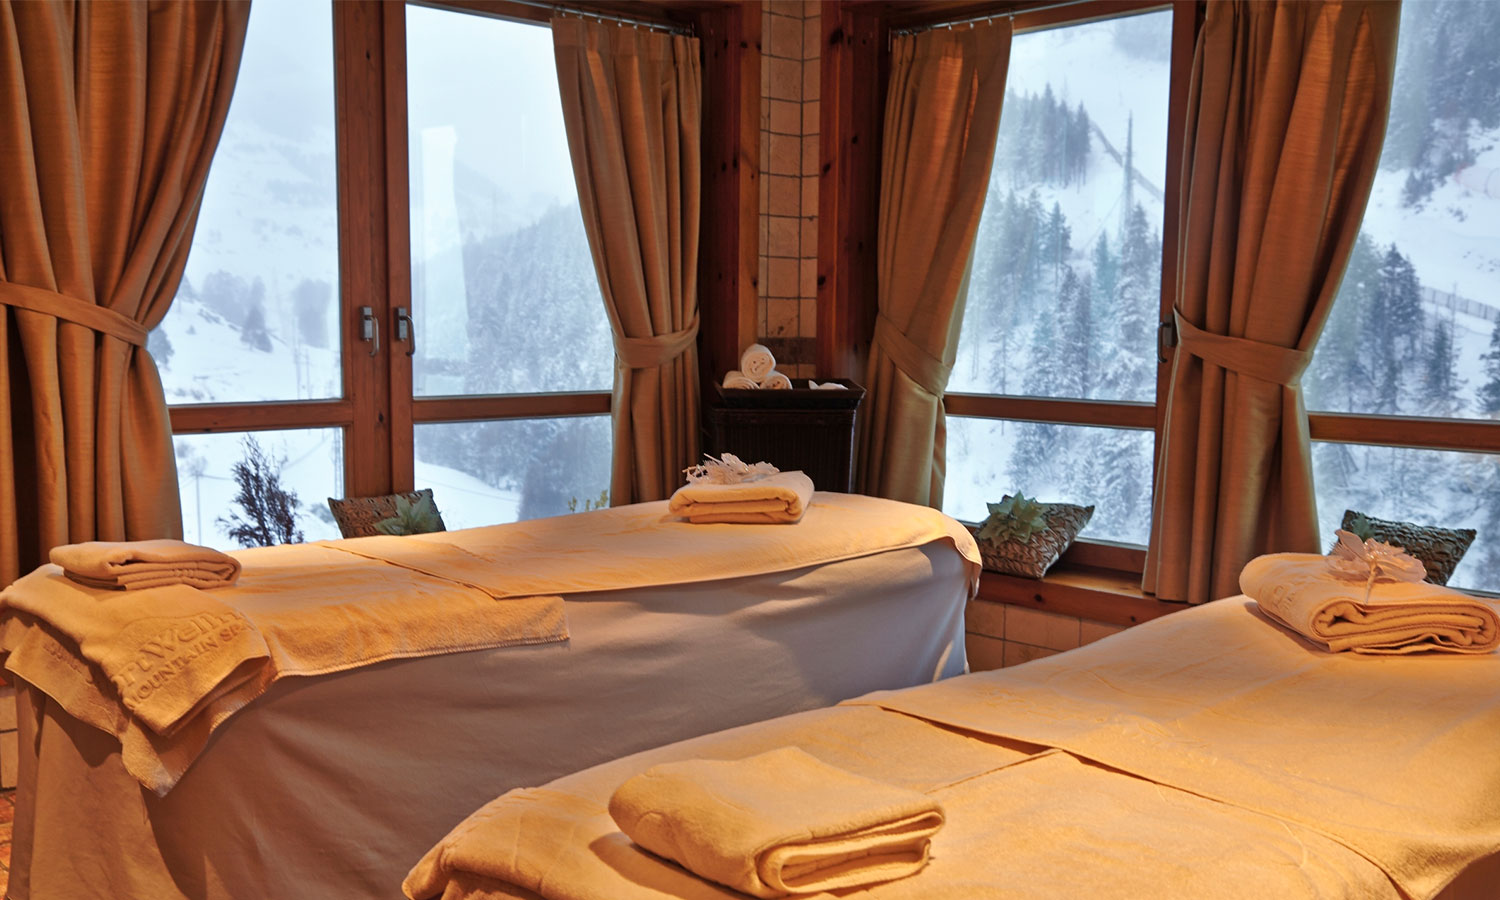 Hermitage Mountain Residences Andorra Sport Wellness Mountain Spa cabines de tractaments de bellesa i massatges con vistes a Grandvalira